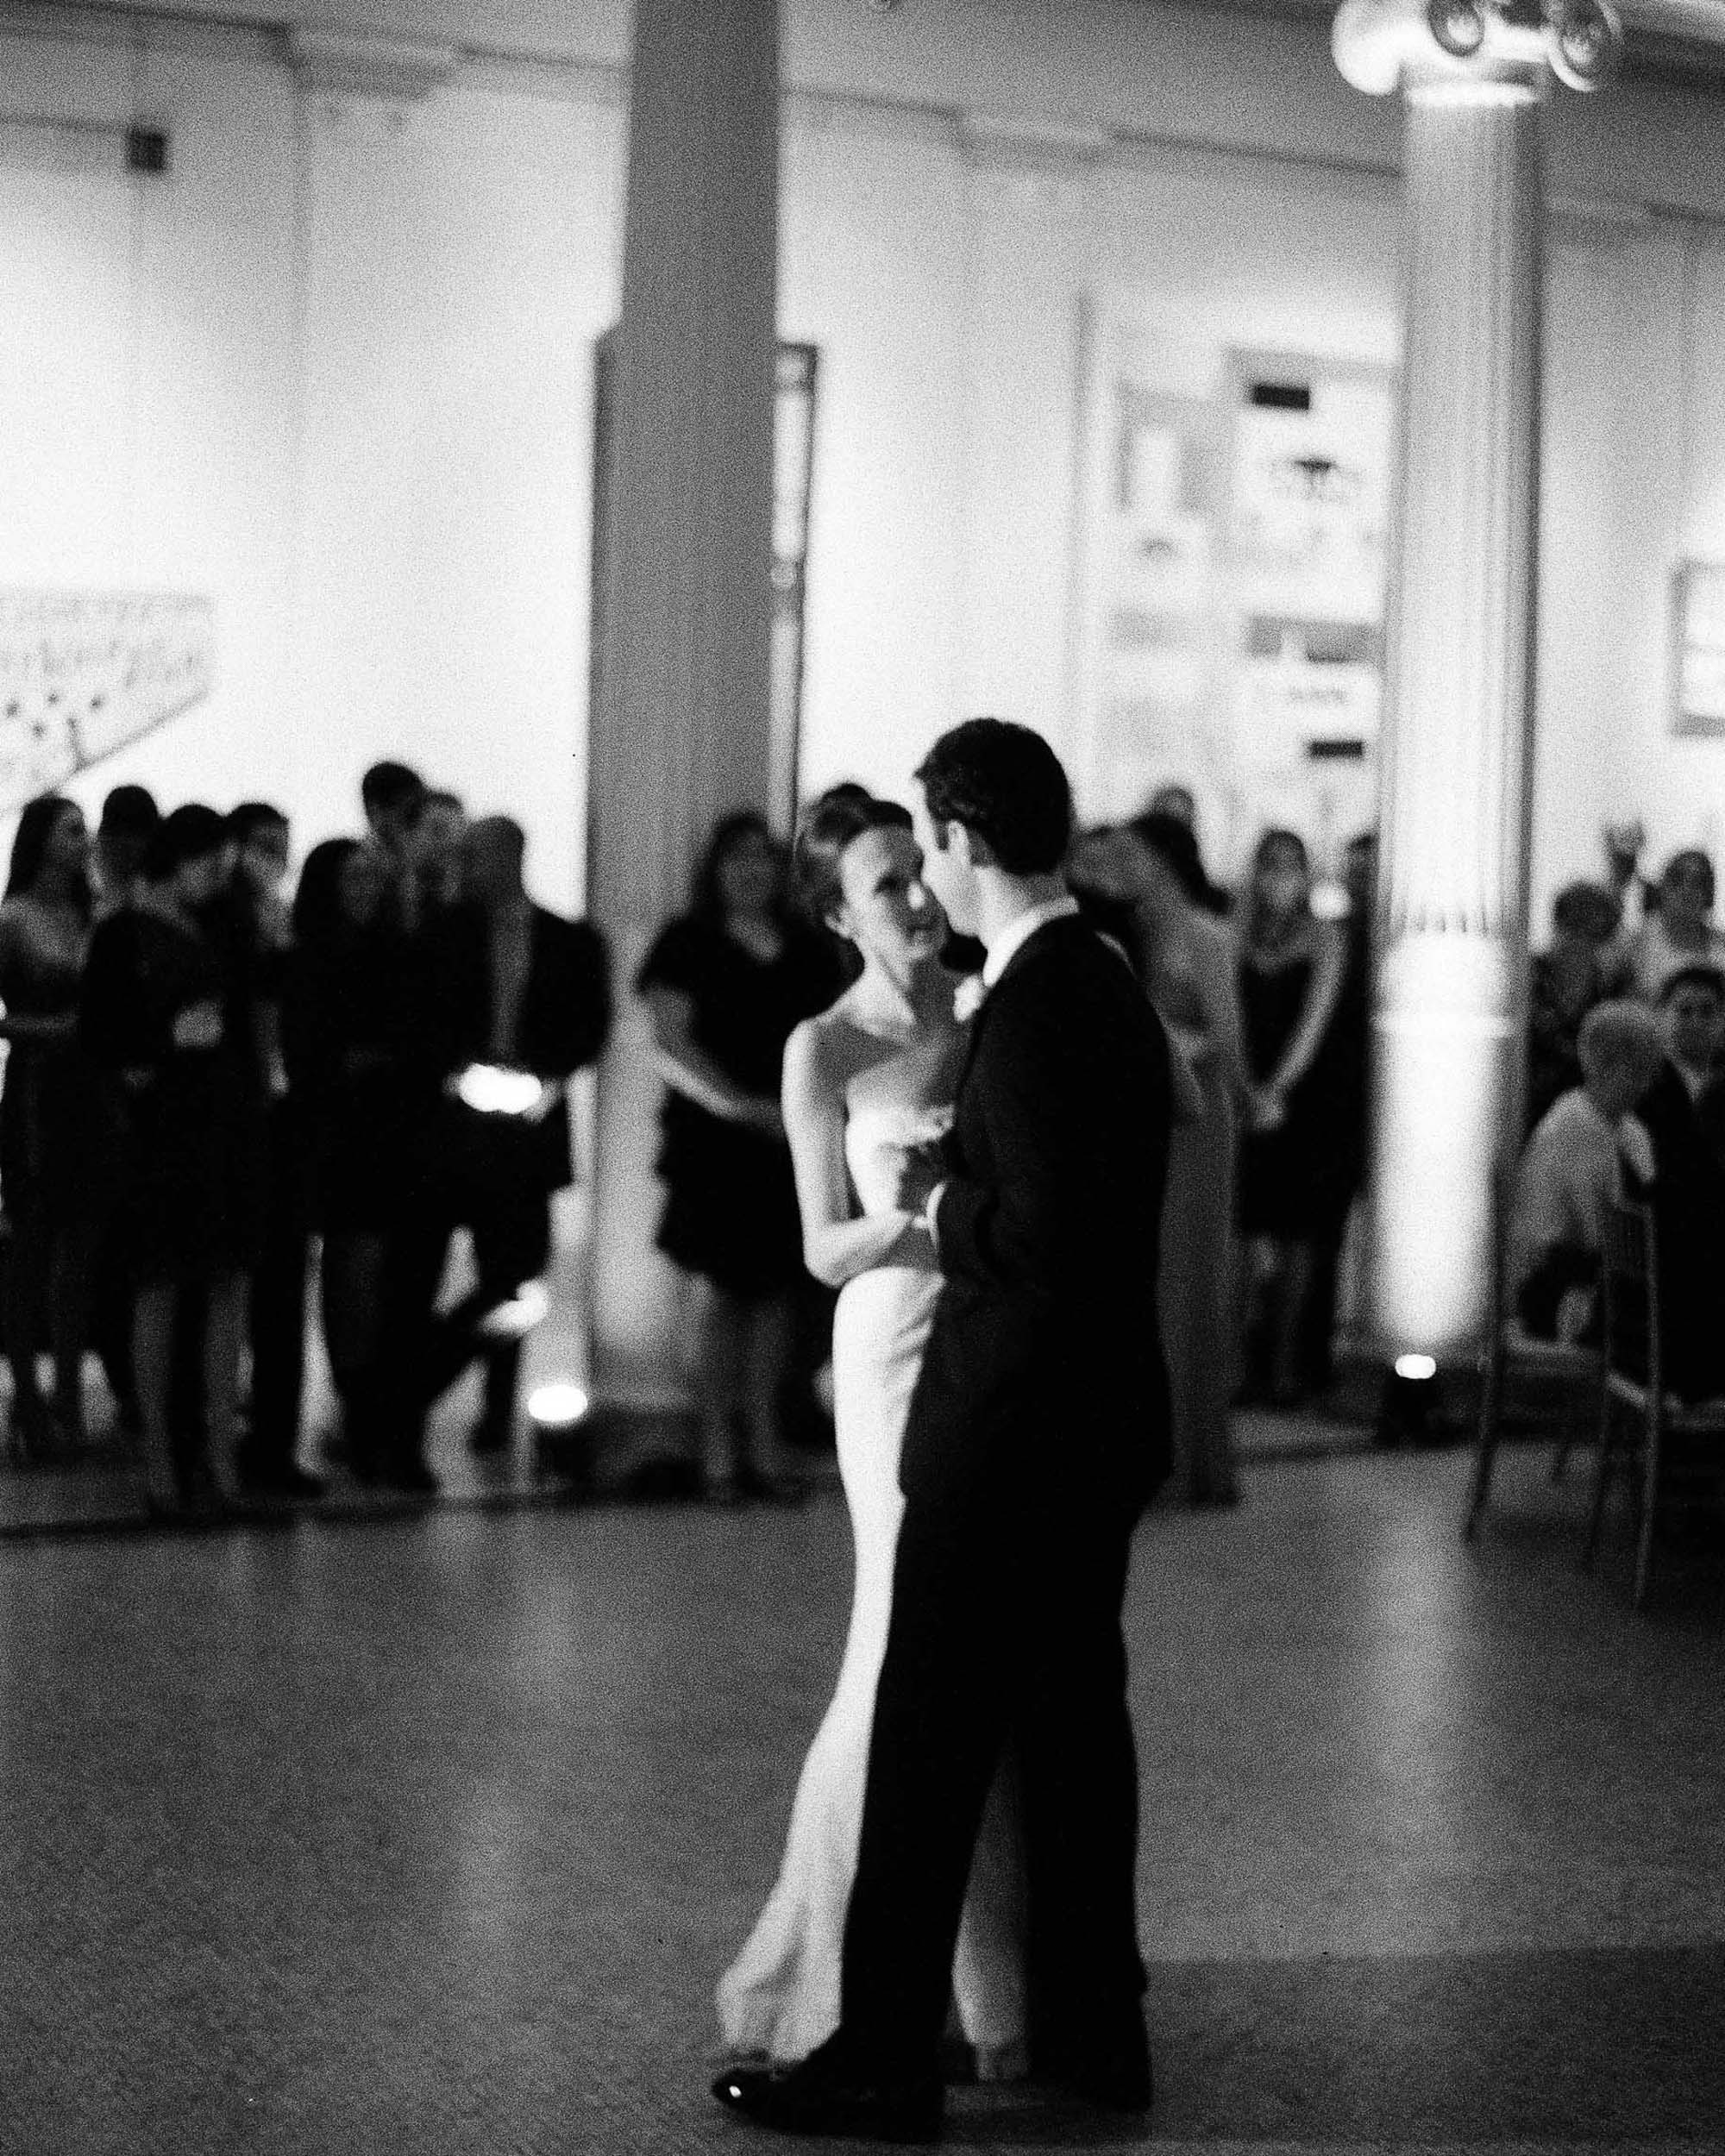 New Orleans Museum of Art Wedding Photographer 0004 - New Orleans Museum of Art